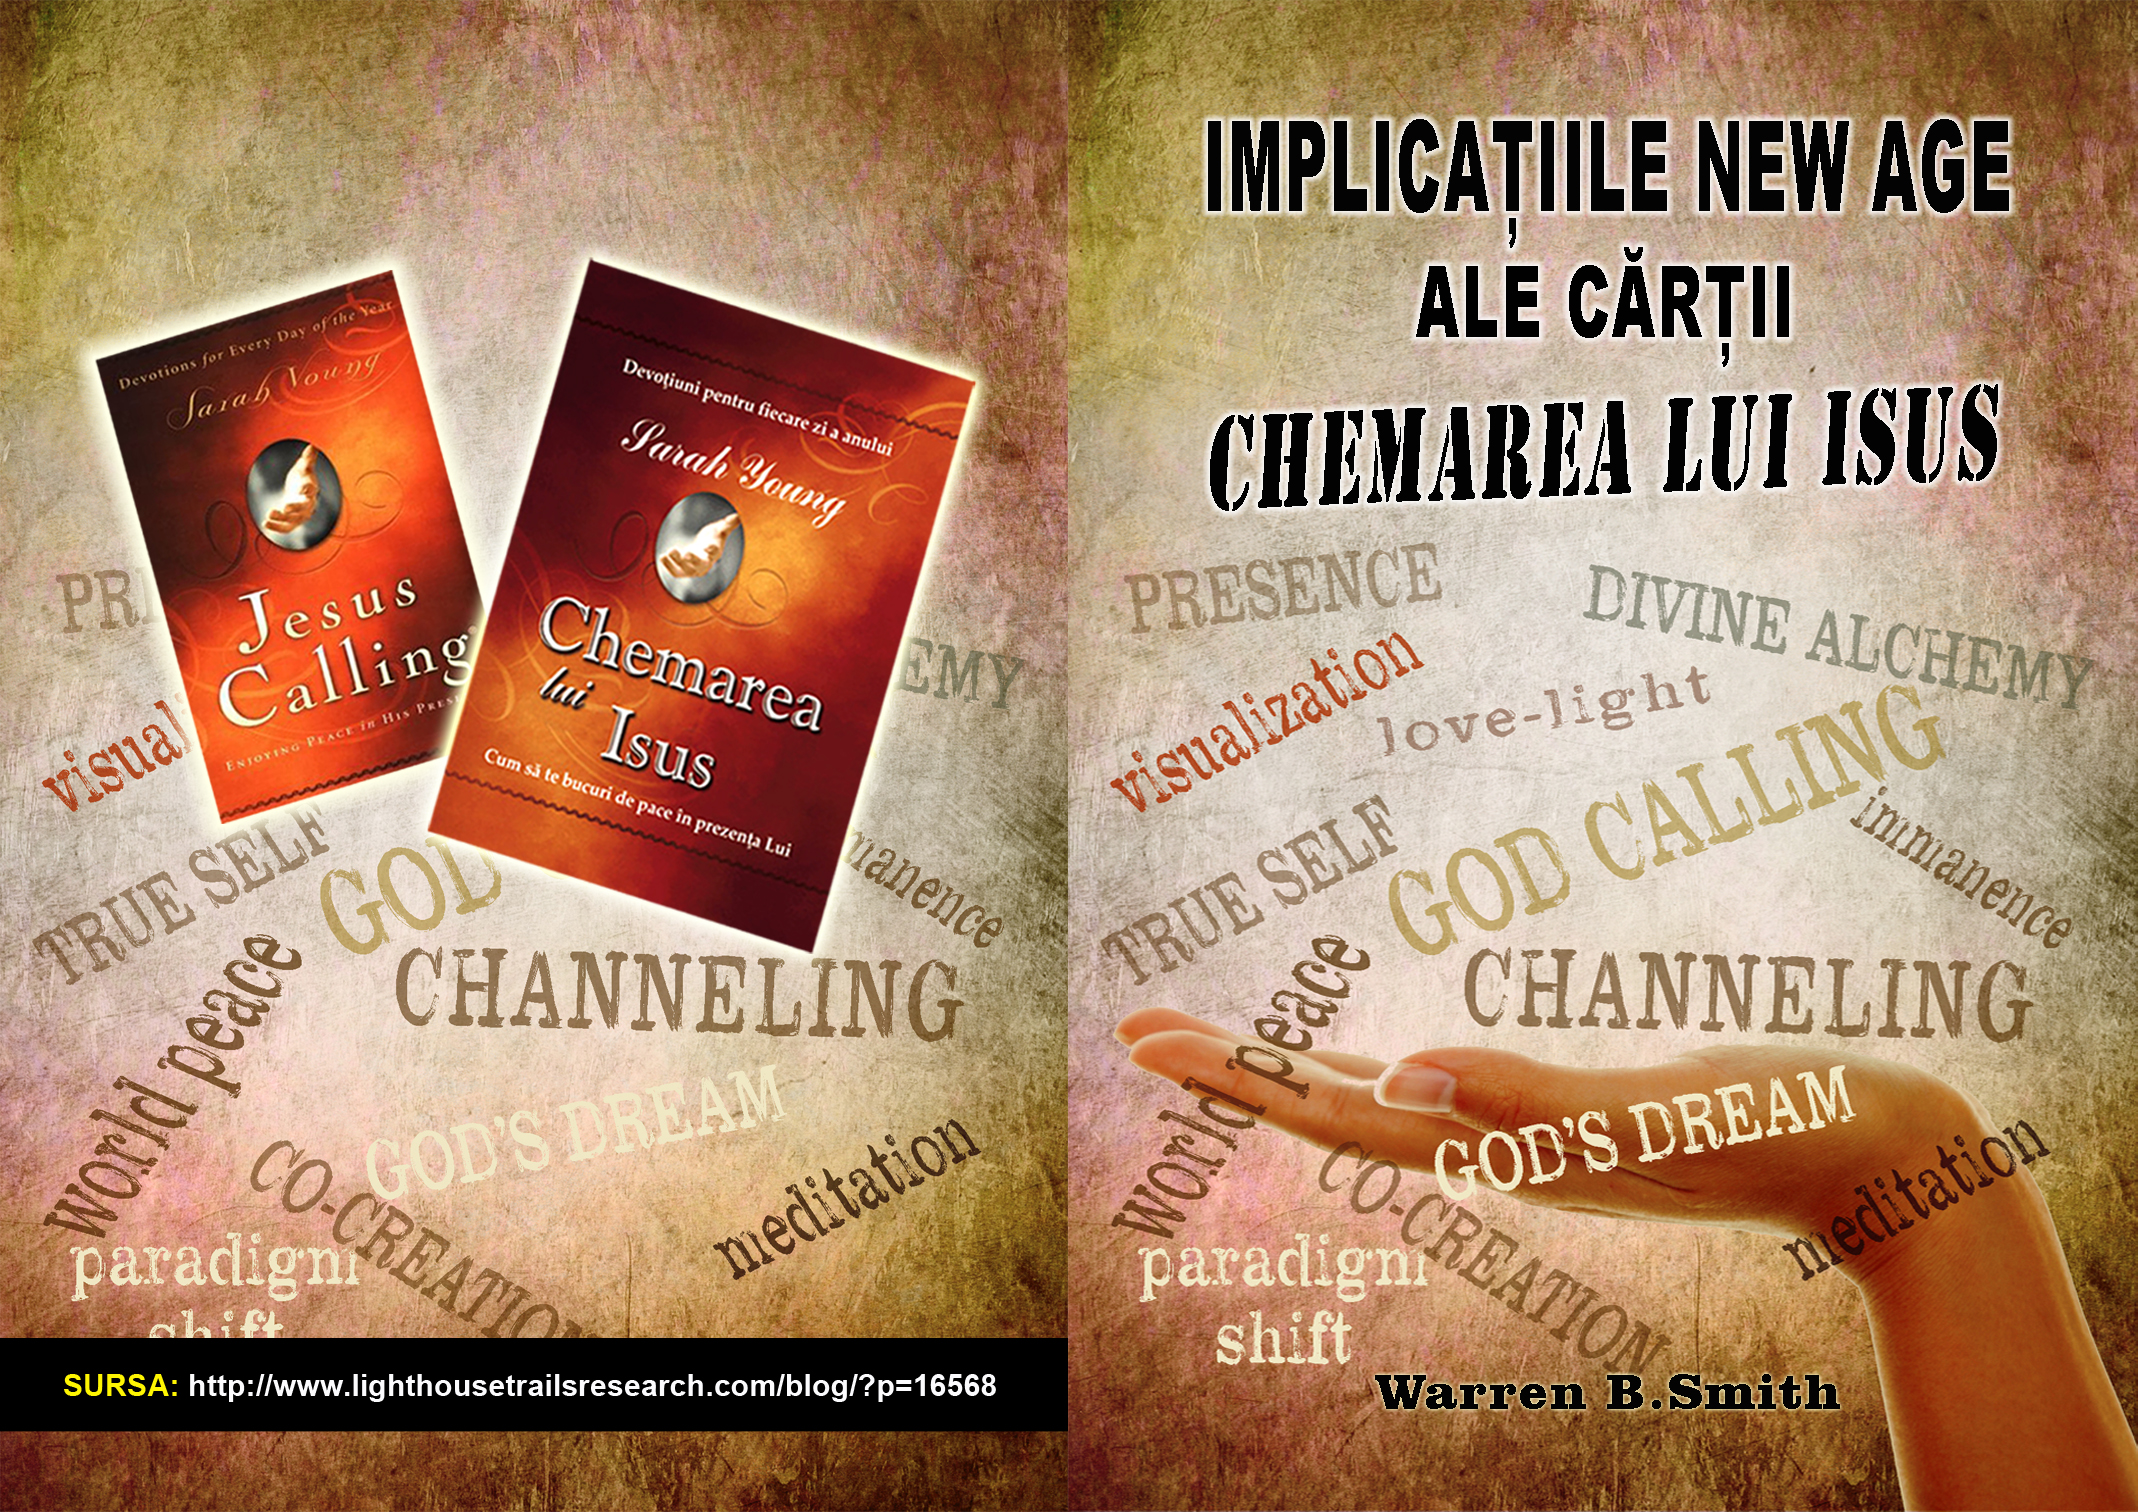 4.Implicatiile New Age ale cartii Chemarea lui Isus